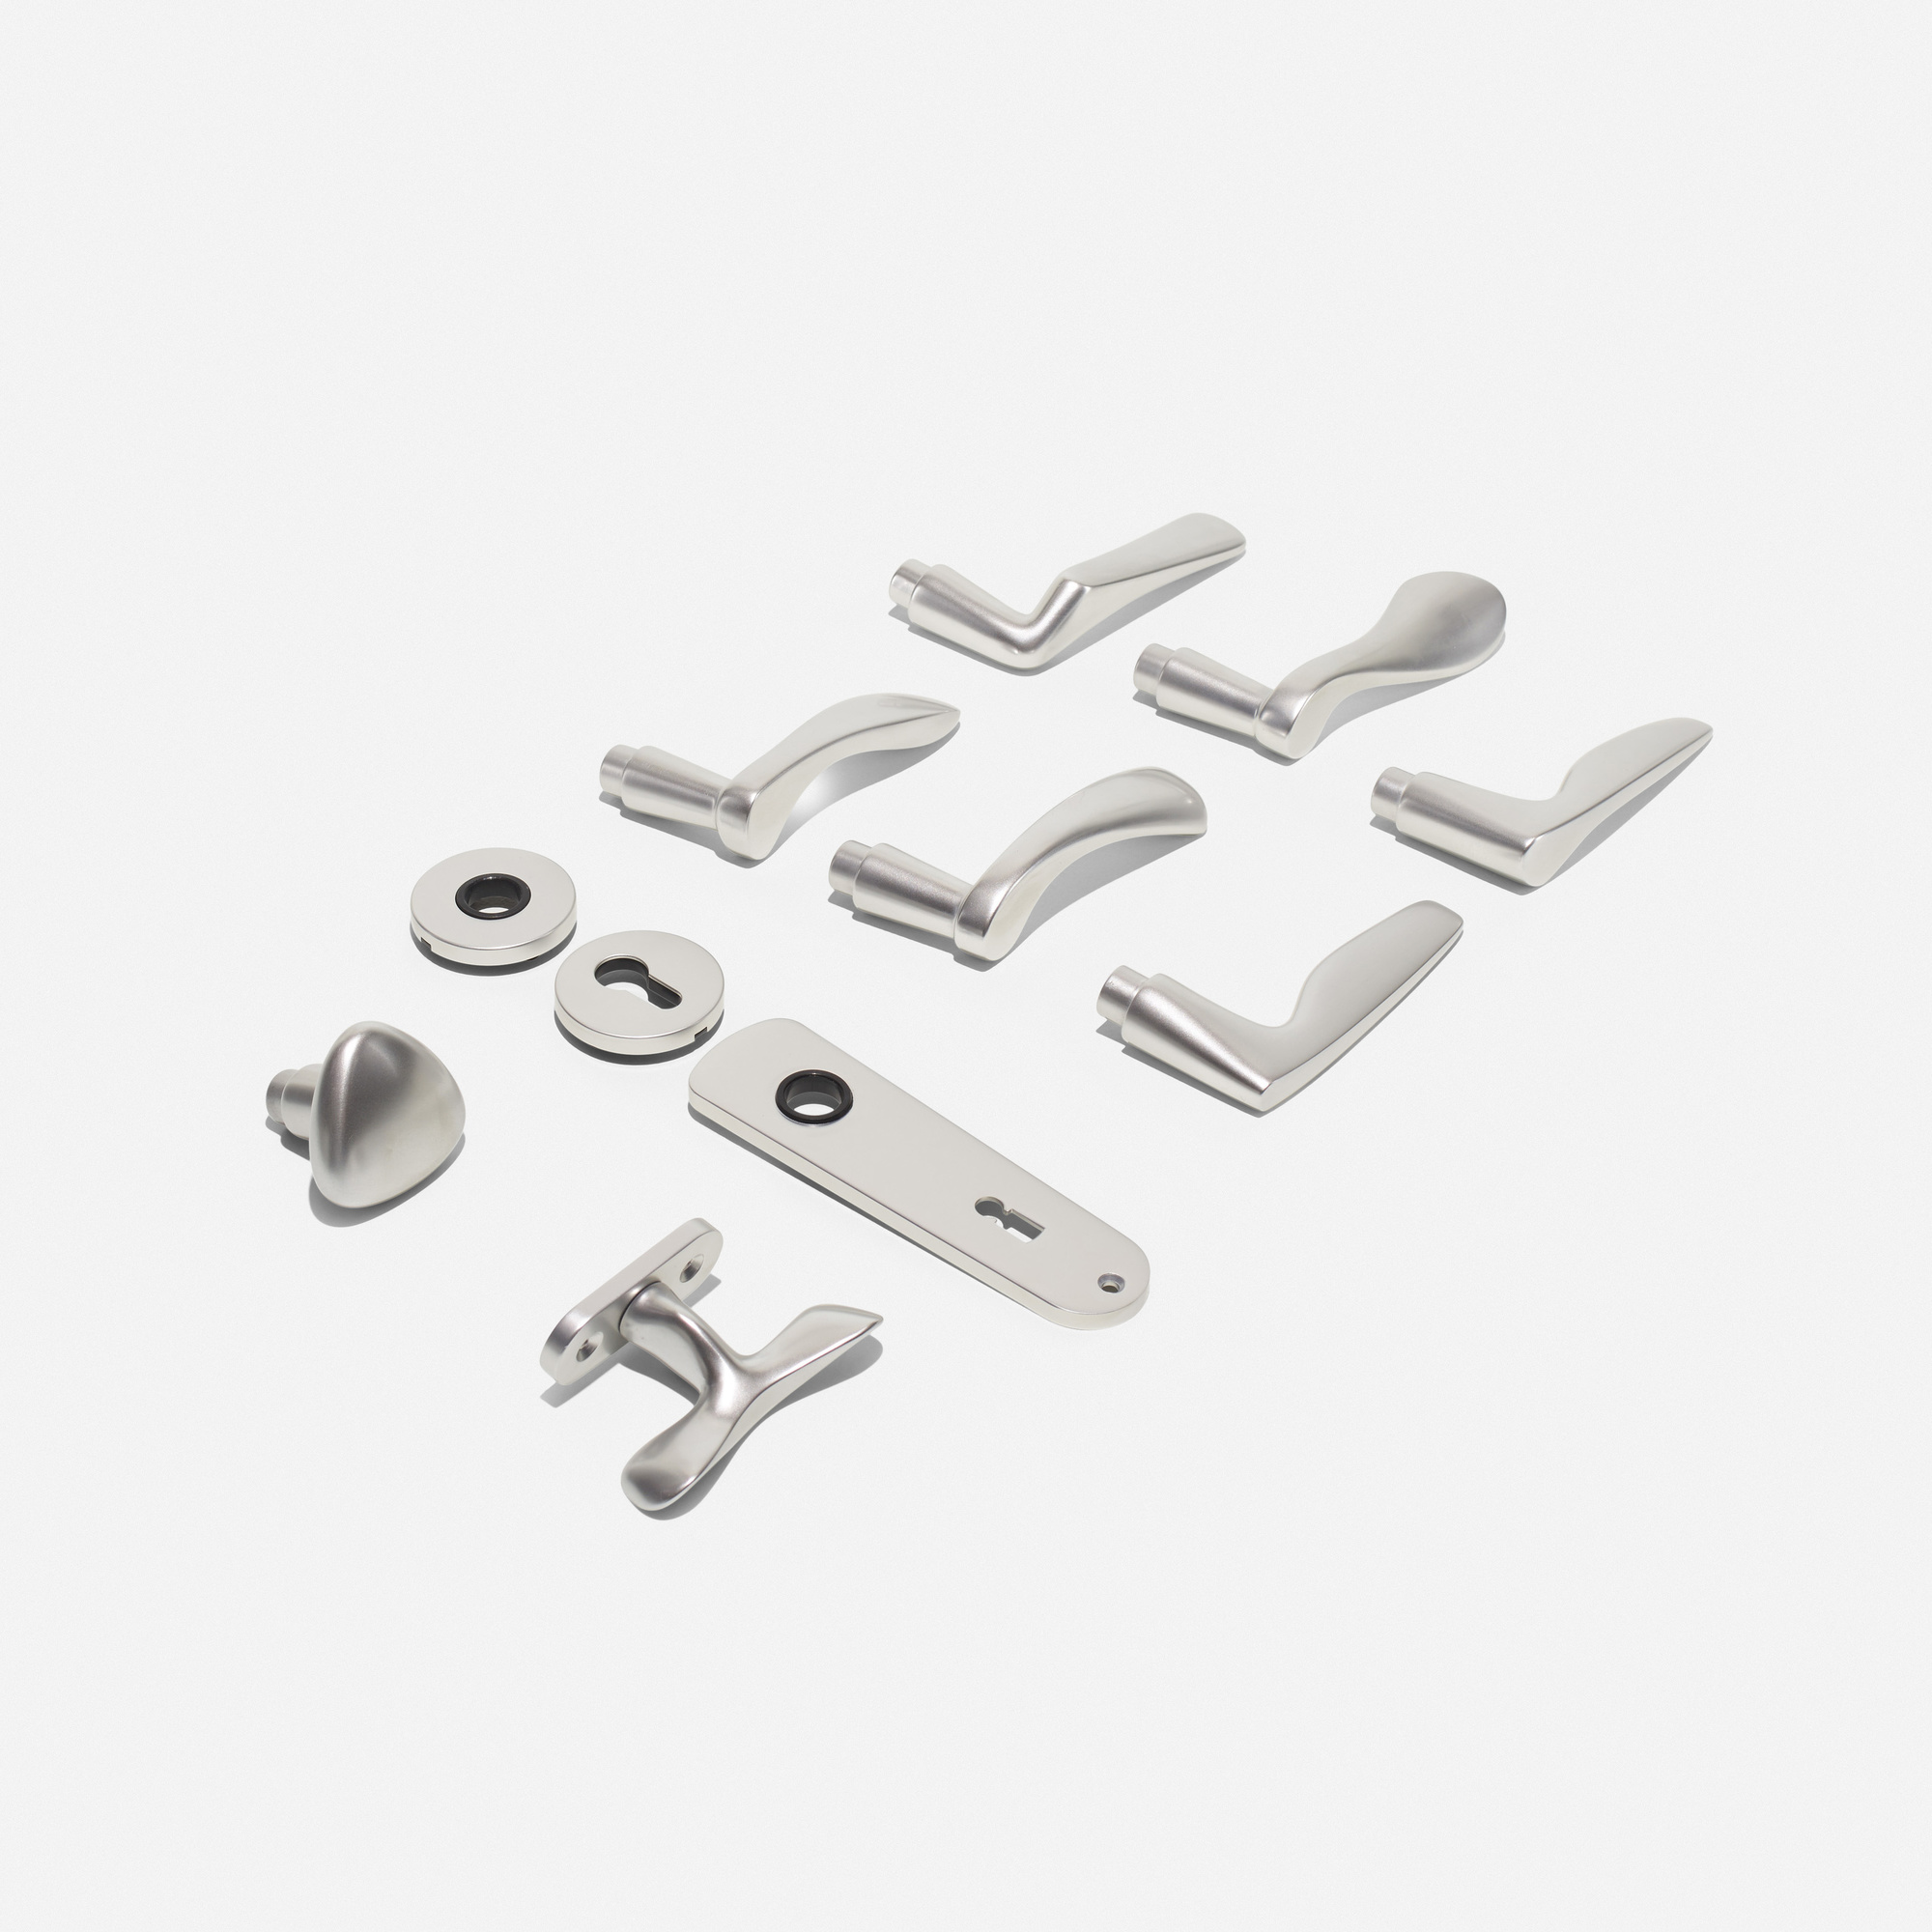 298: Johannes Potente / door hardware set (1 of 2)